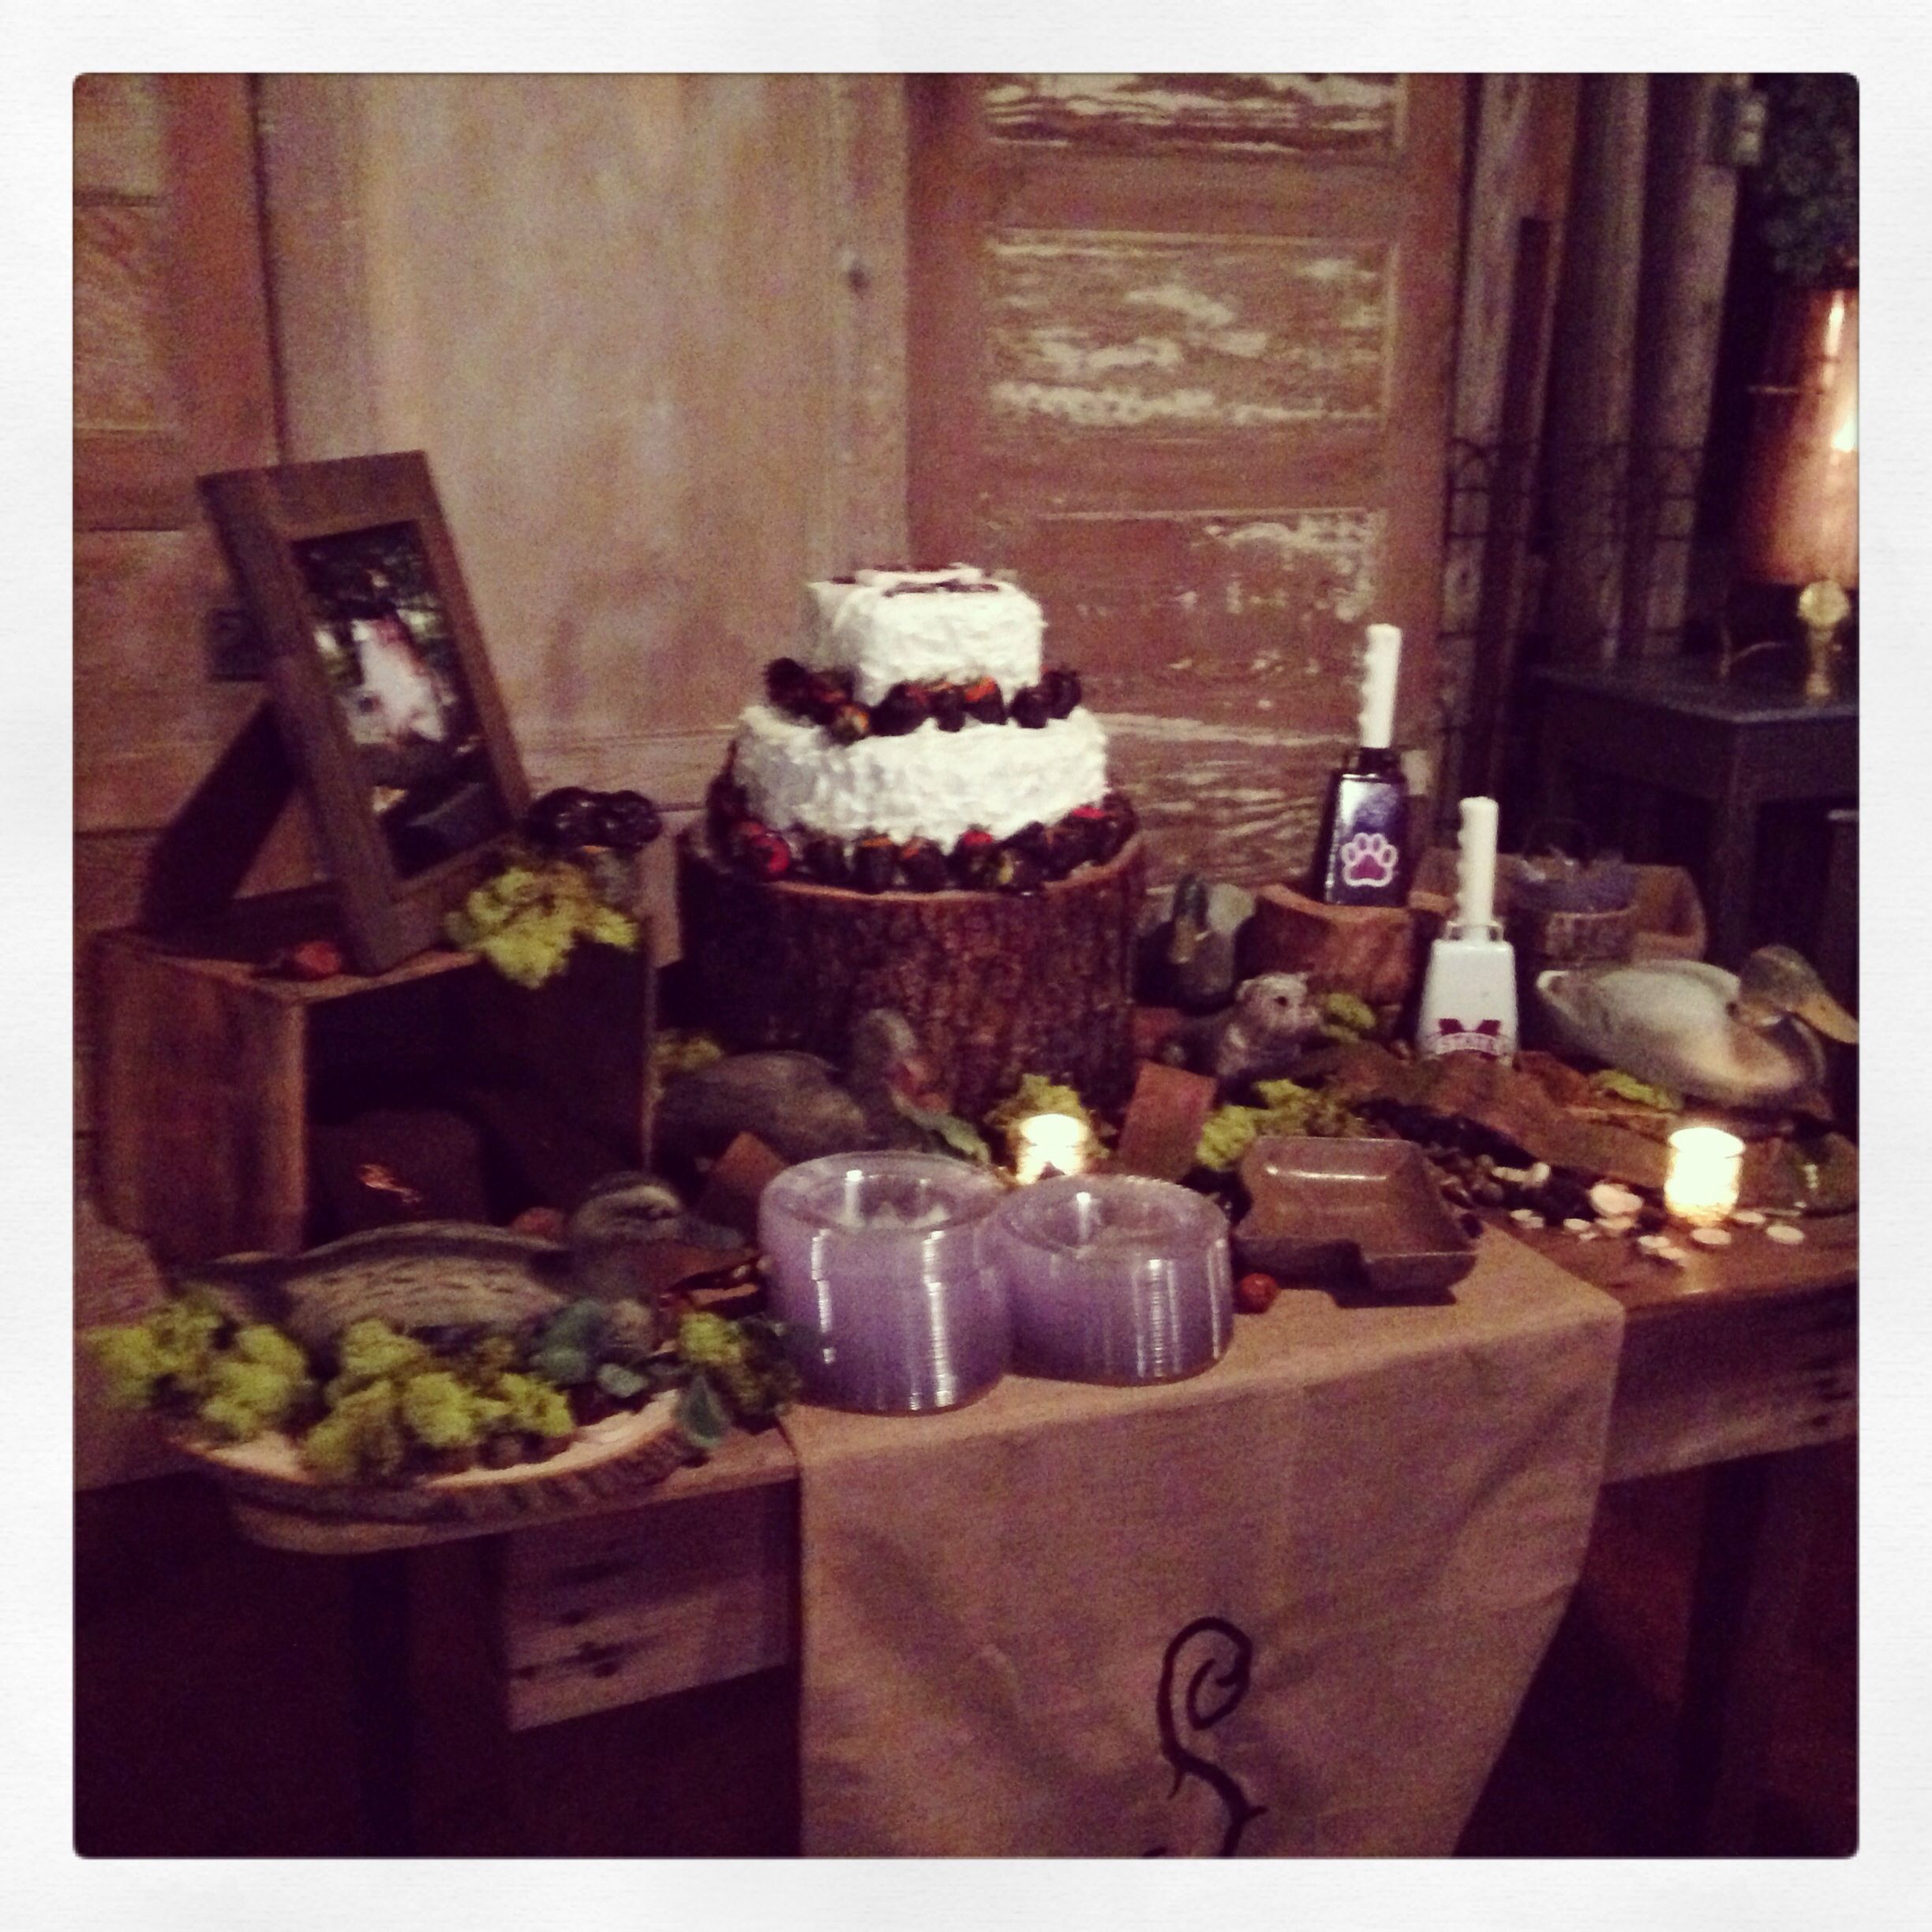 Drews Cake Table MSU Hunting And Rustic Themed With